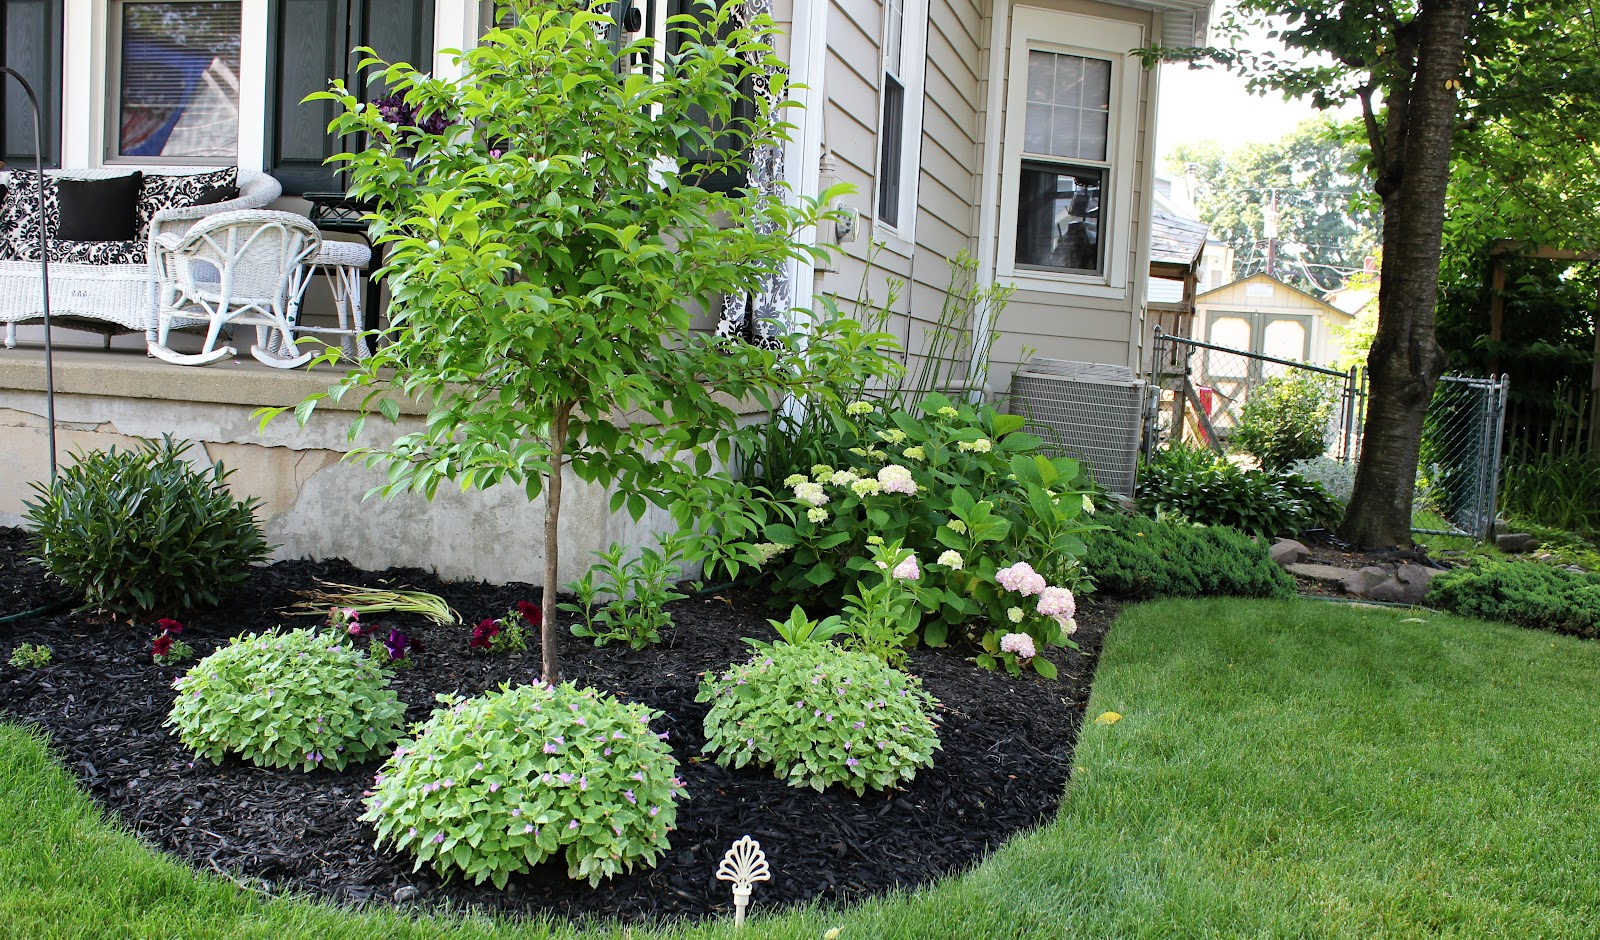 Bleu hydrangea may 2012 for Flower bed designs for front of house